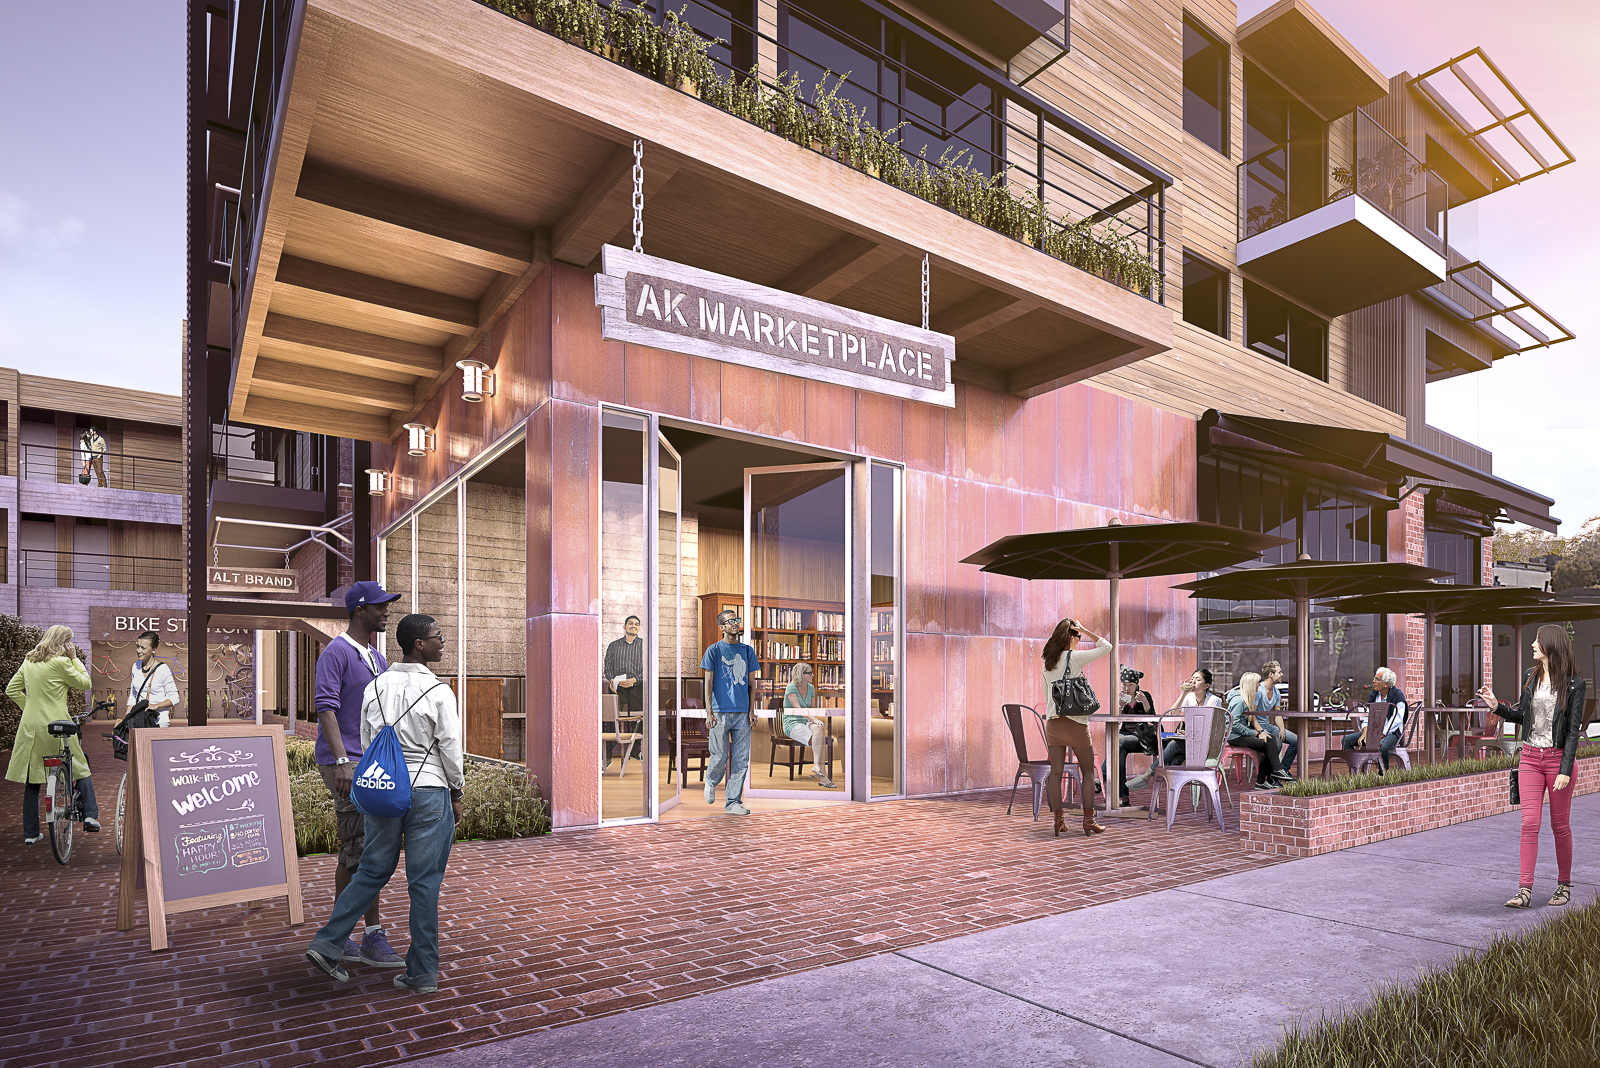 S.E.A.-Studio-Environmental-Architecture-David-Hertz-FAIA-Abbot-Kinney-Hotel-Venice-Place-adaptive-reuse-sustainable-regenerative-restorative-design-pedestrian-walkable-urbanism-local-community-context-modern-destination-inspired-resort-mixed-use-LA-4.jpg